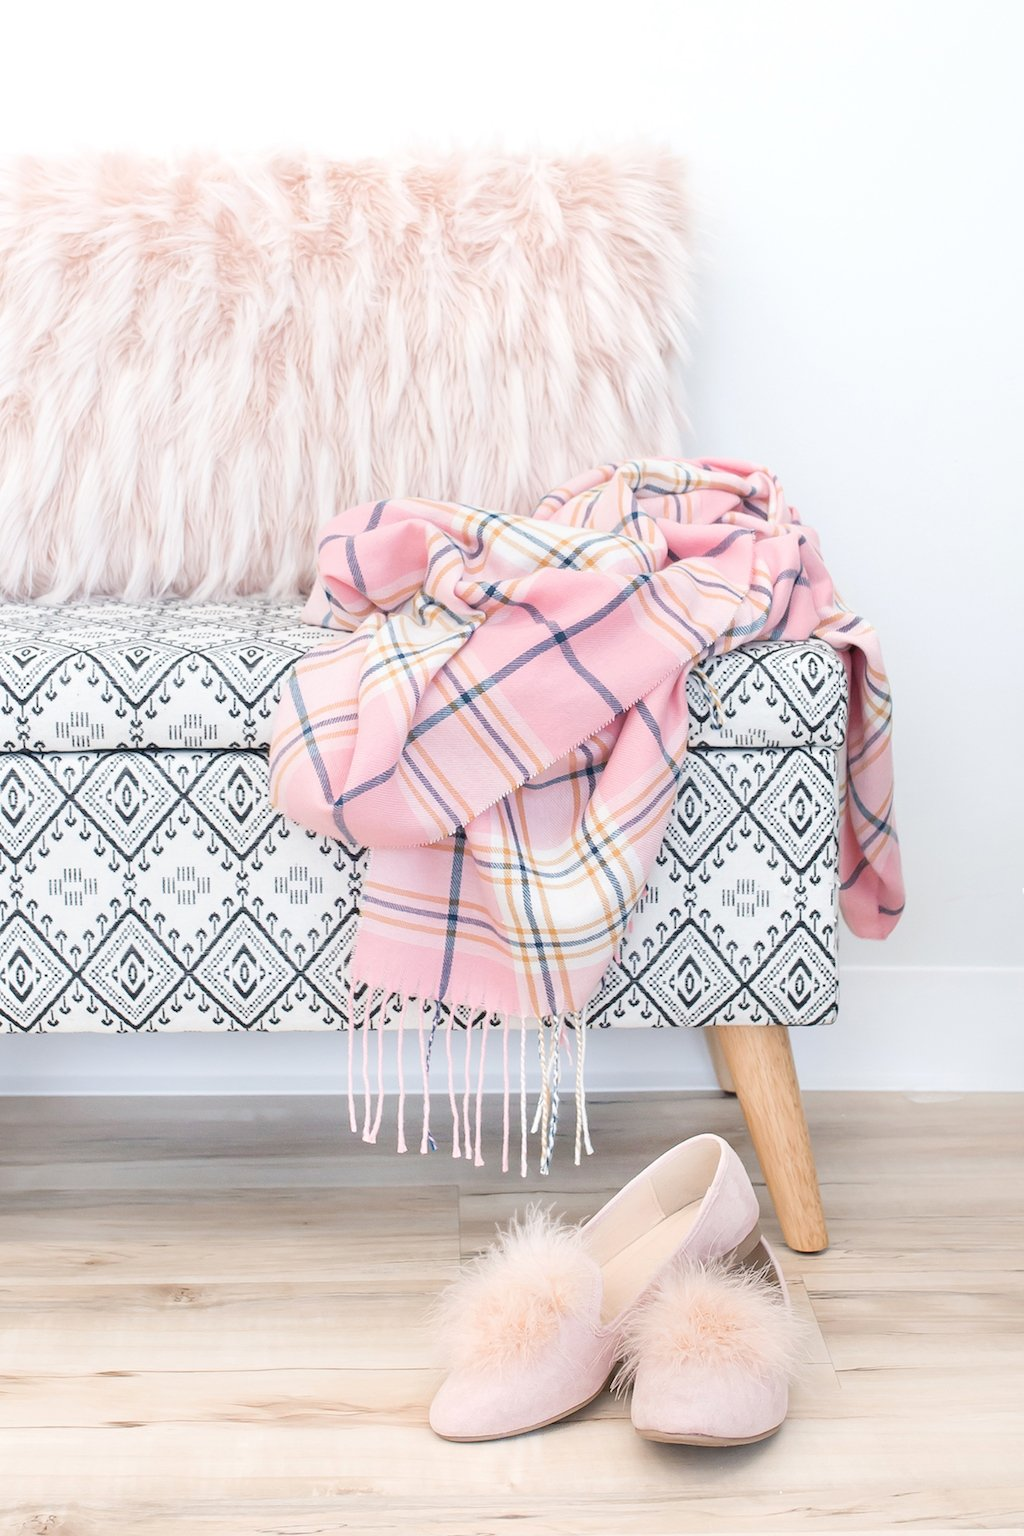 Chair, pink scarf, and slippers.